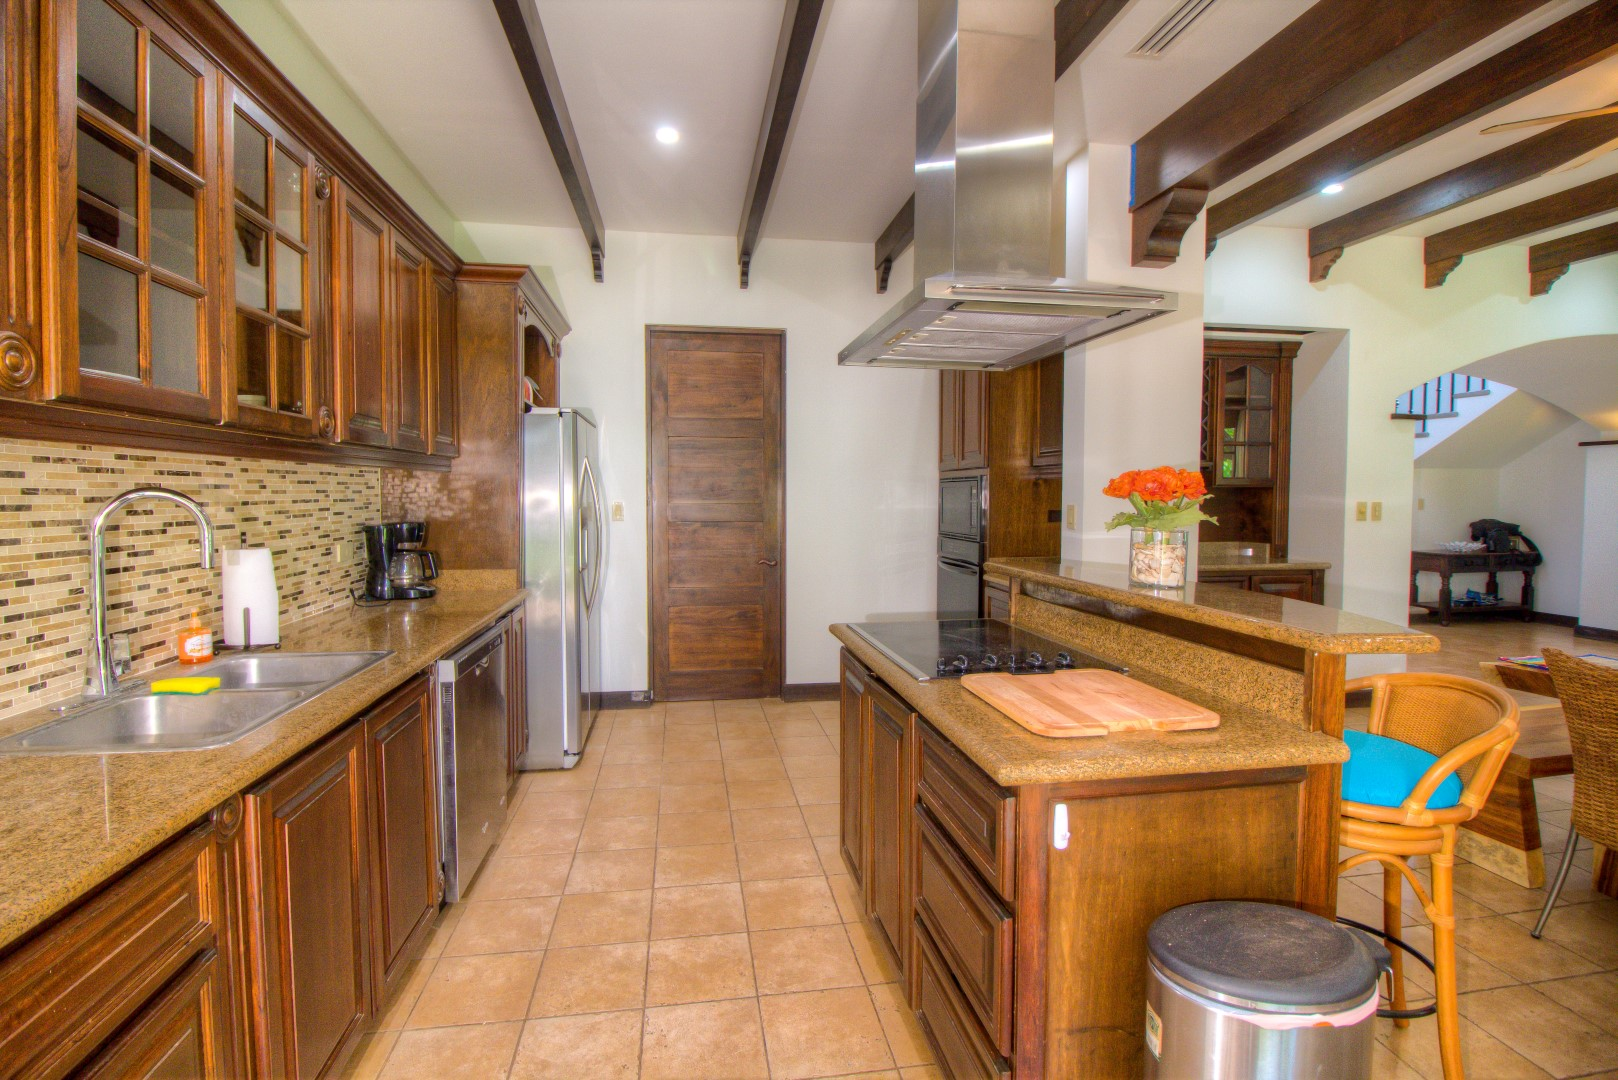 Granite counter-tops and stainless steel appliances